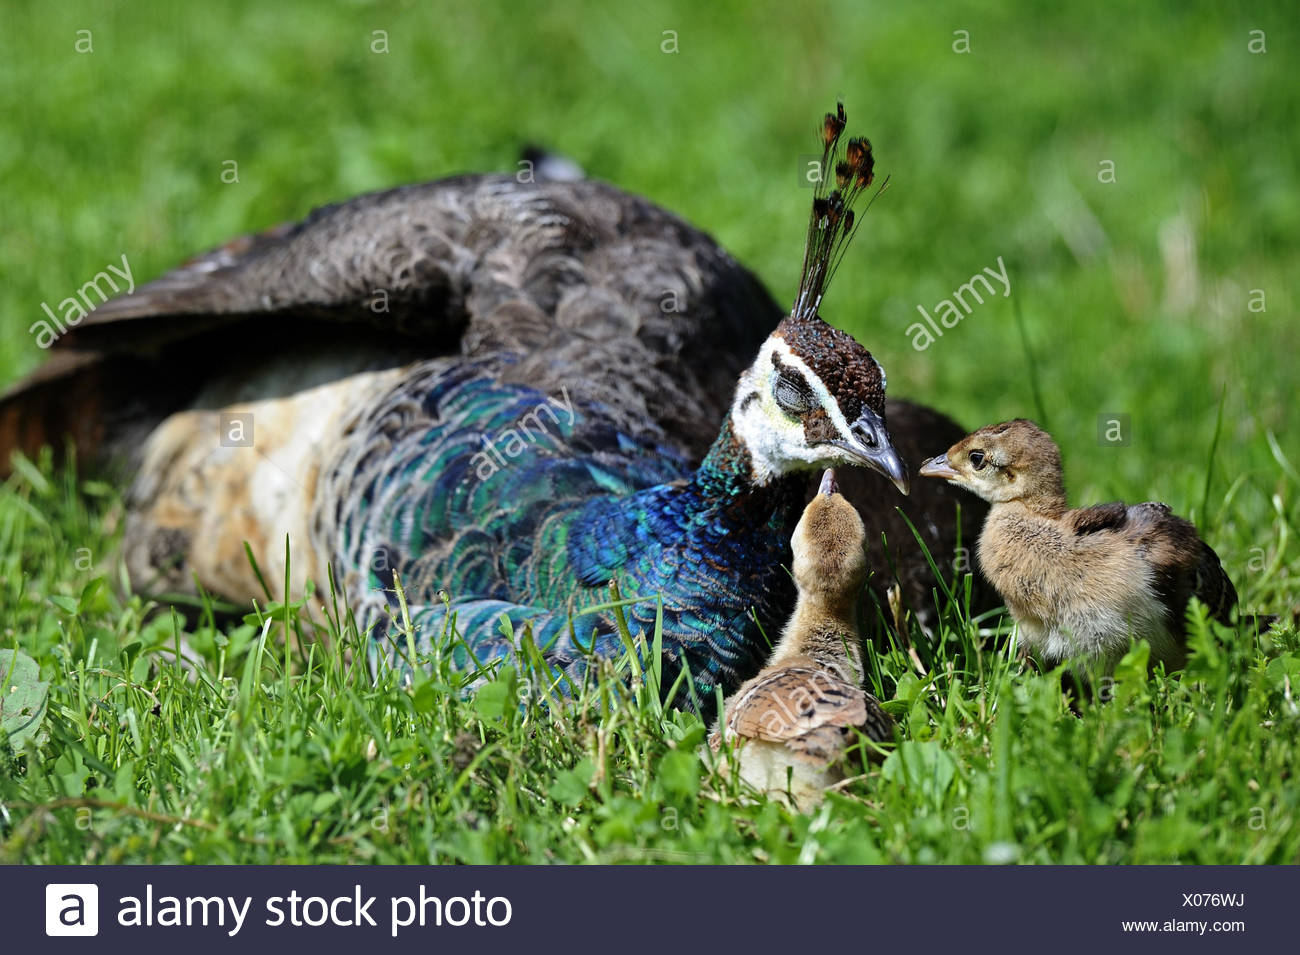 Peacock, Pavo cristatus, mother animal, rest, fledglings, meadow, Germany, habitat, gallinaceous birds, animals, animal family, upper tail deck feathers, feathers, plumage, lie, sleep, tiredly, rest, young animals, young animals, two, grass, nature, - Stock Image